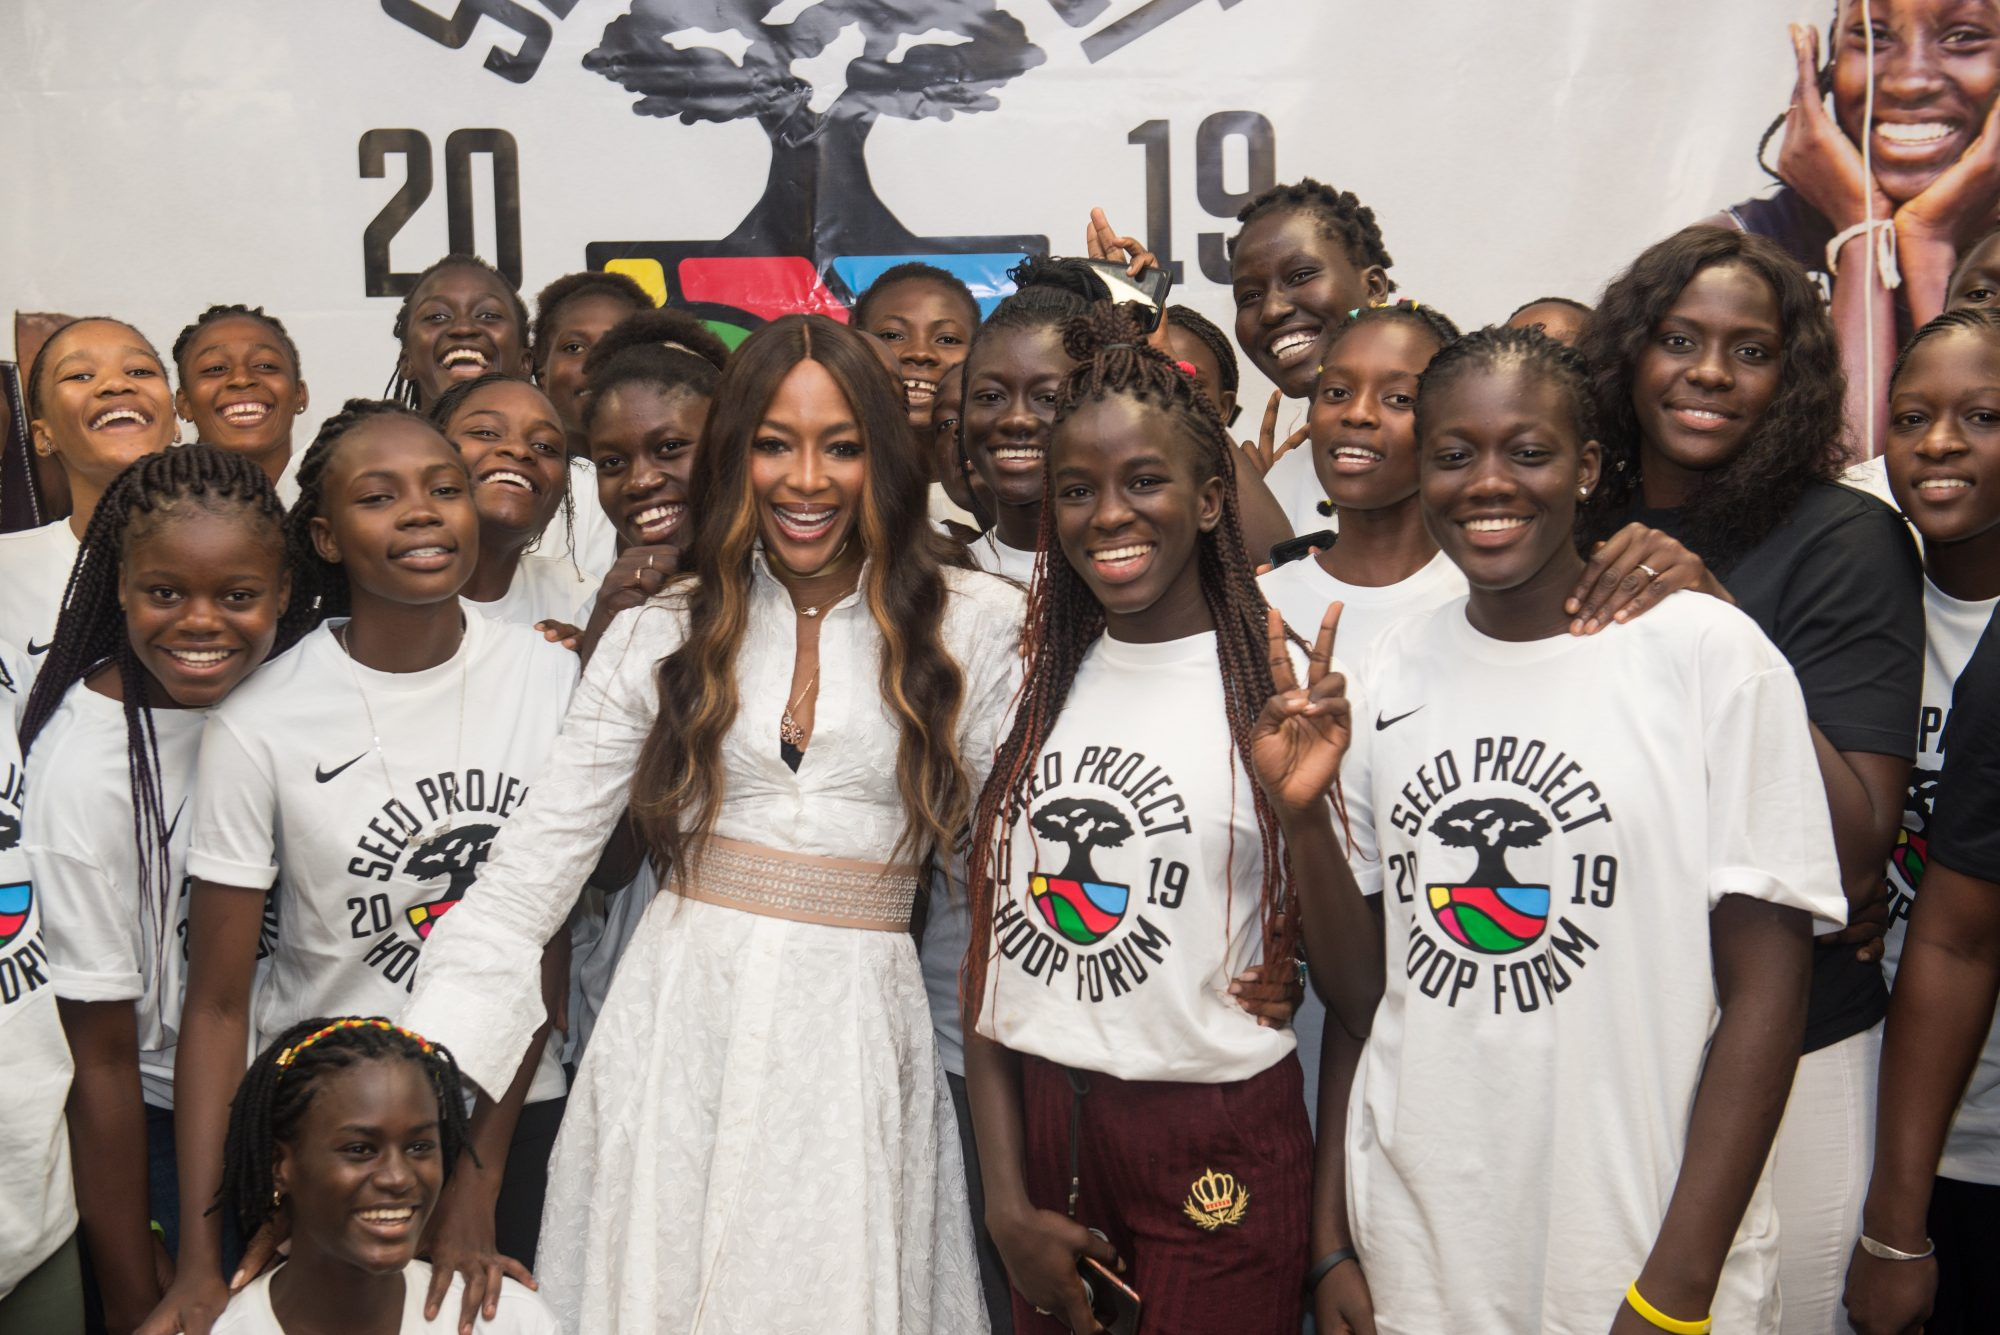 Naomi Campbell Attends The Seed Project Hoop Forum 2019